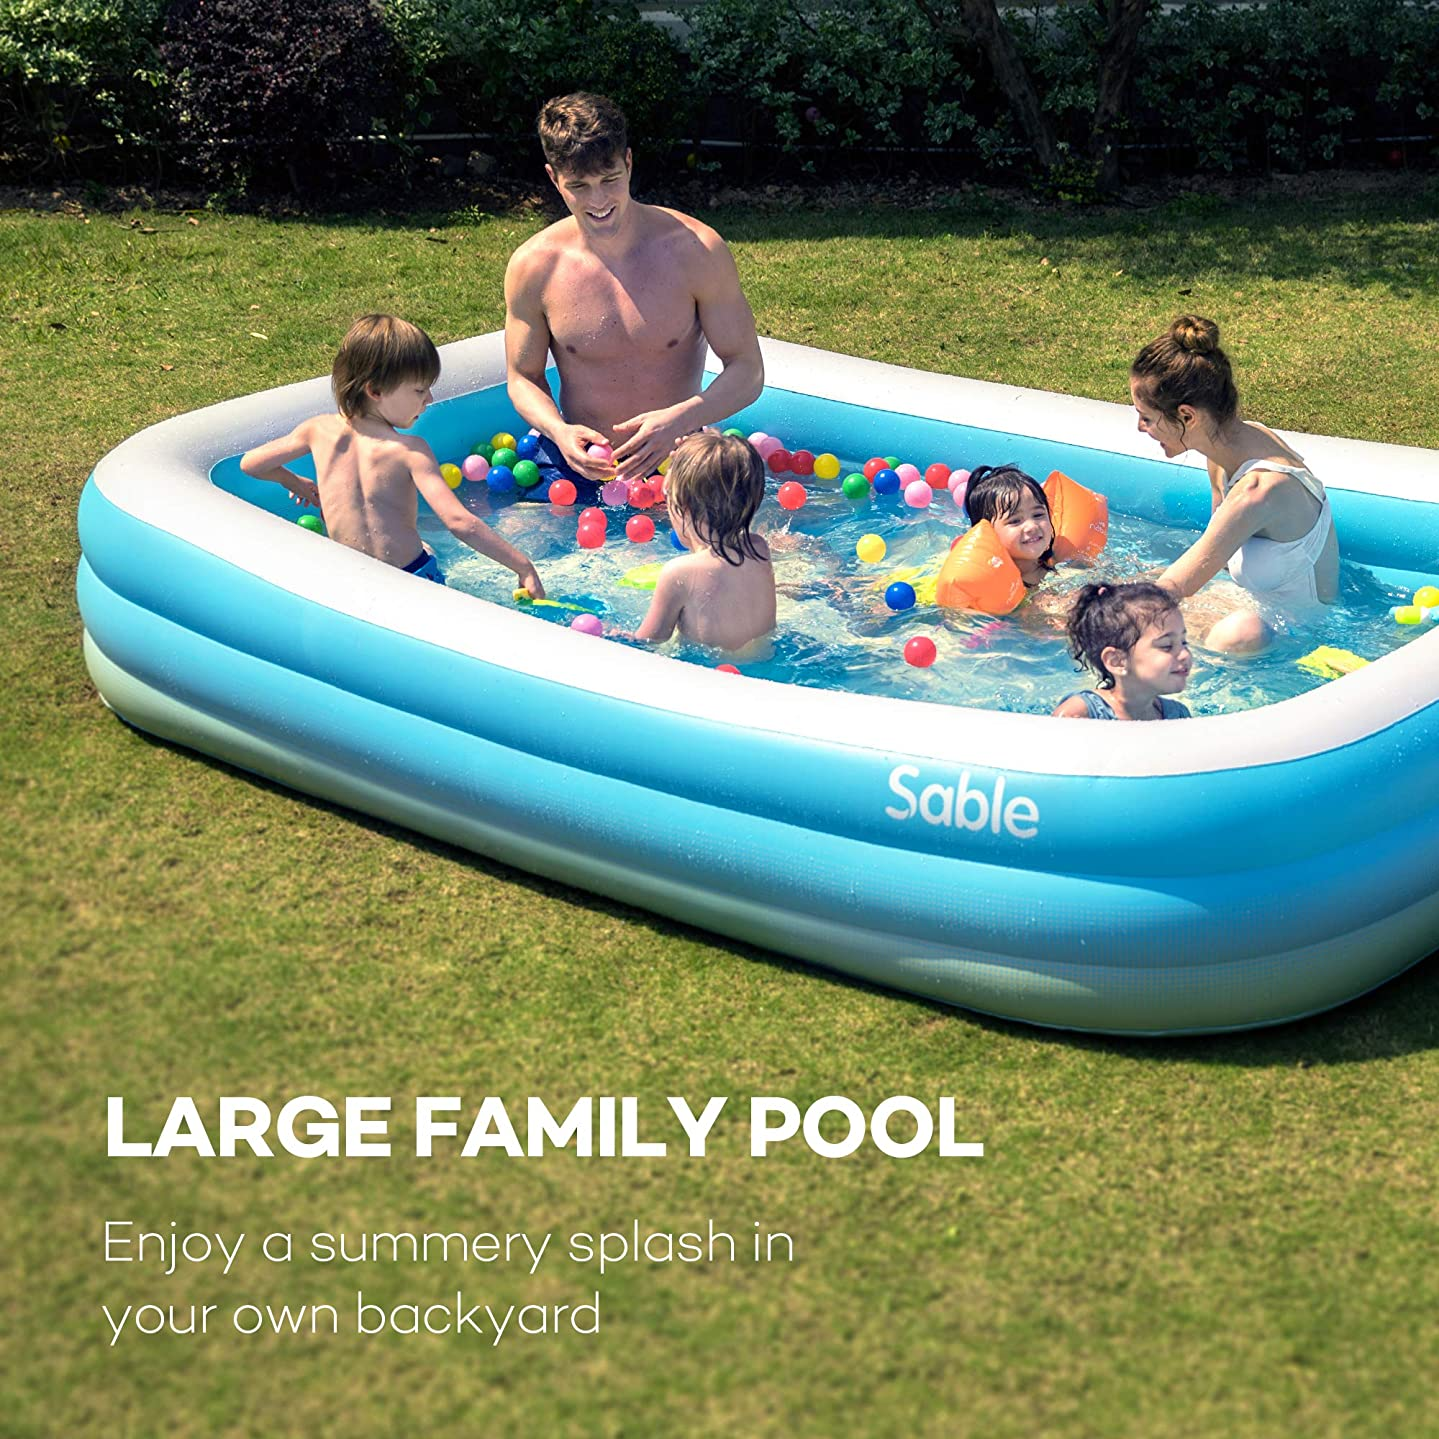 Sable Inflatable Pool, Blow Up Swim Center Family Pool for Toddlers, Kids, 118